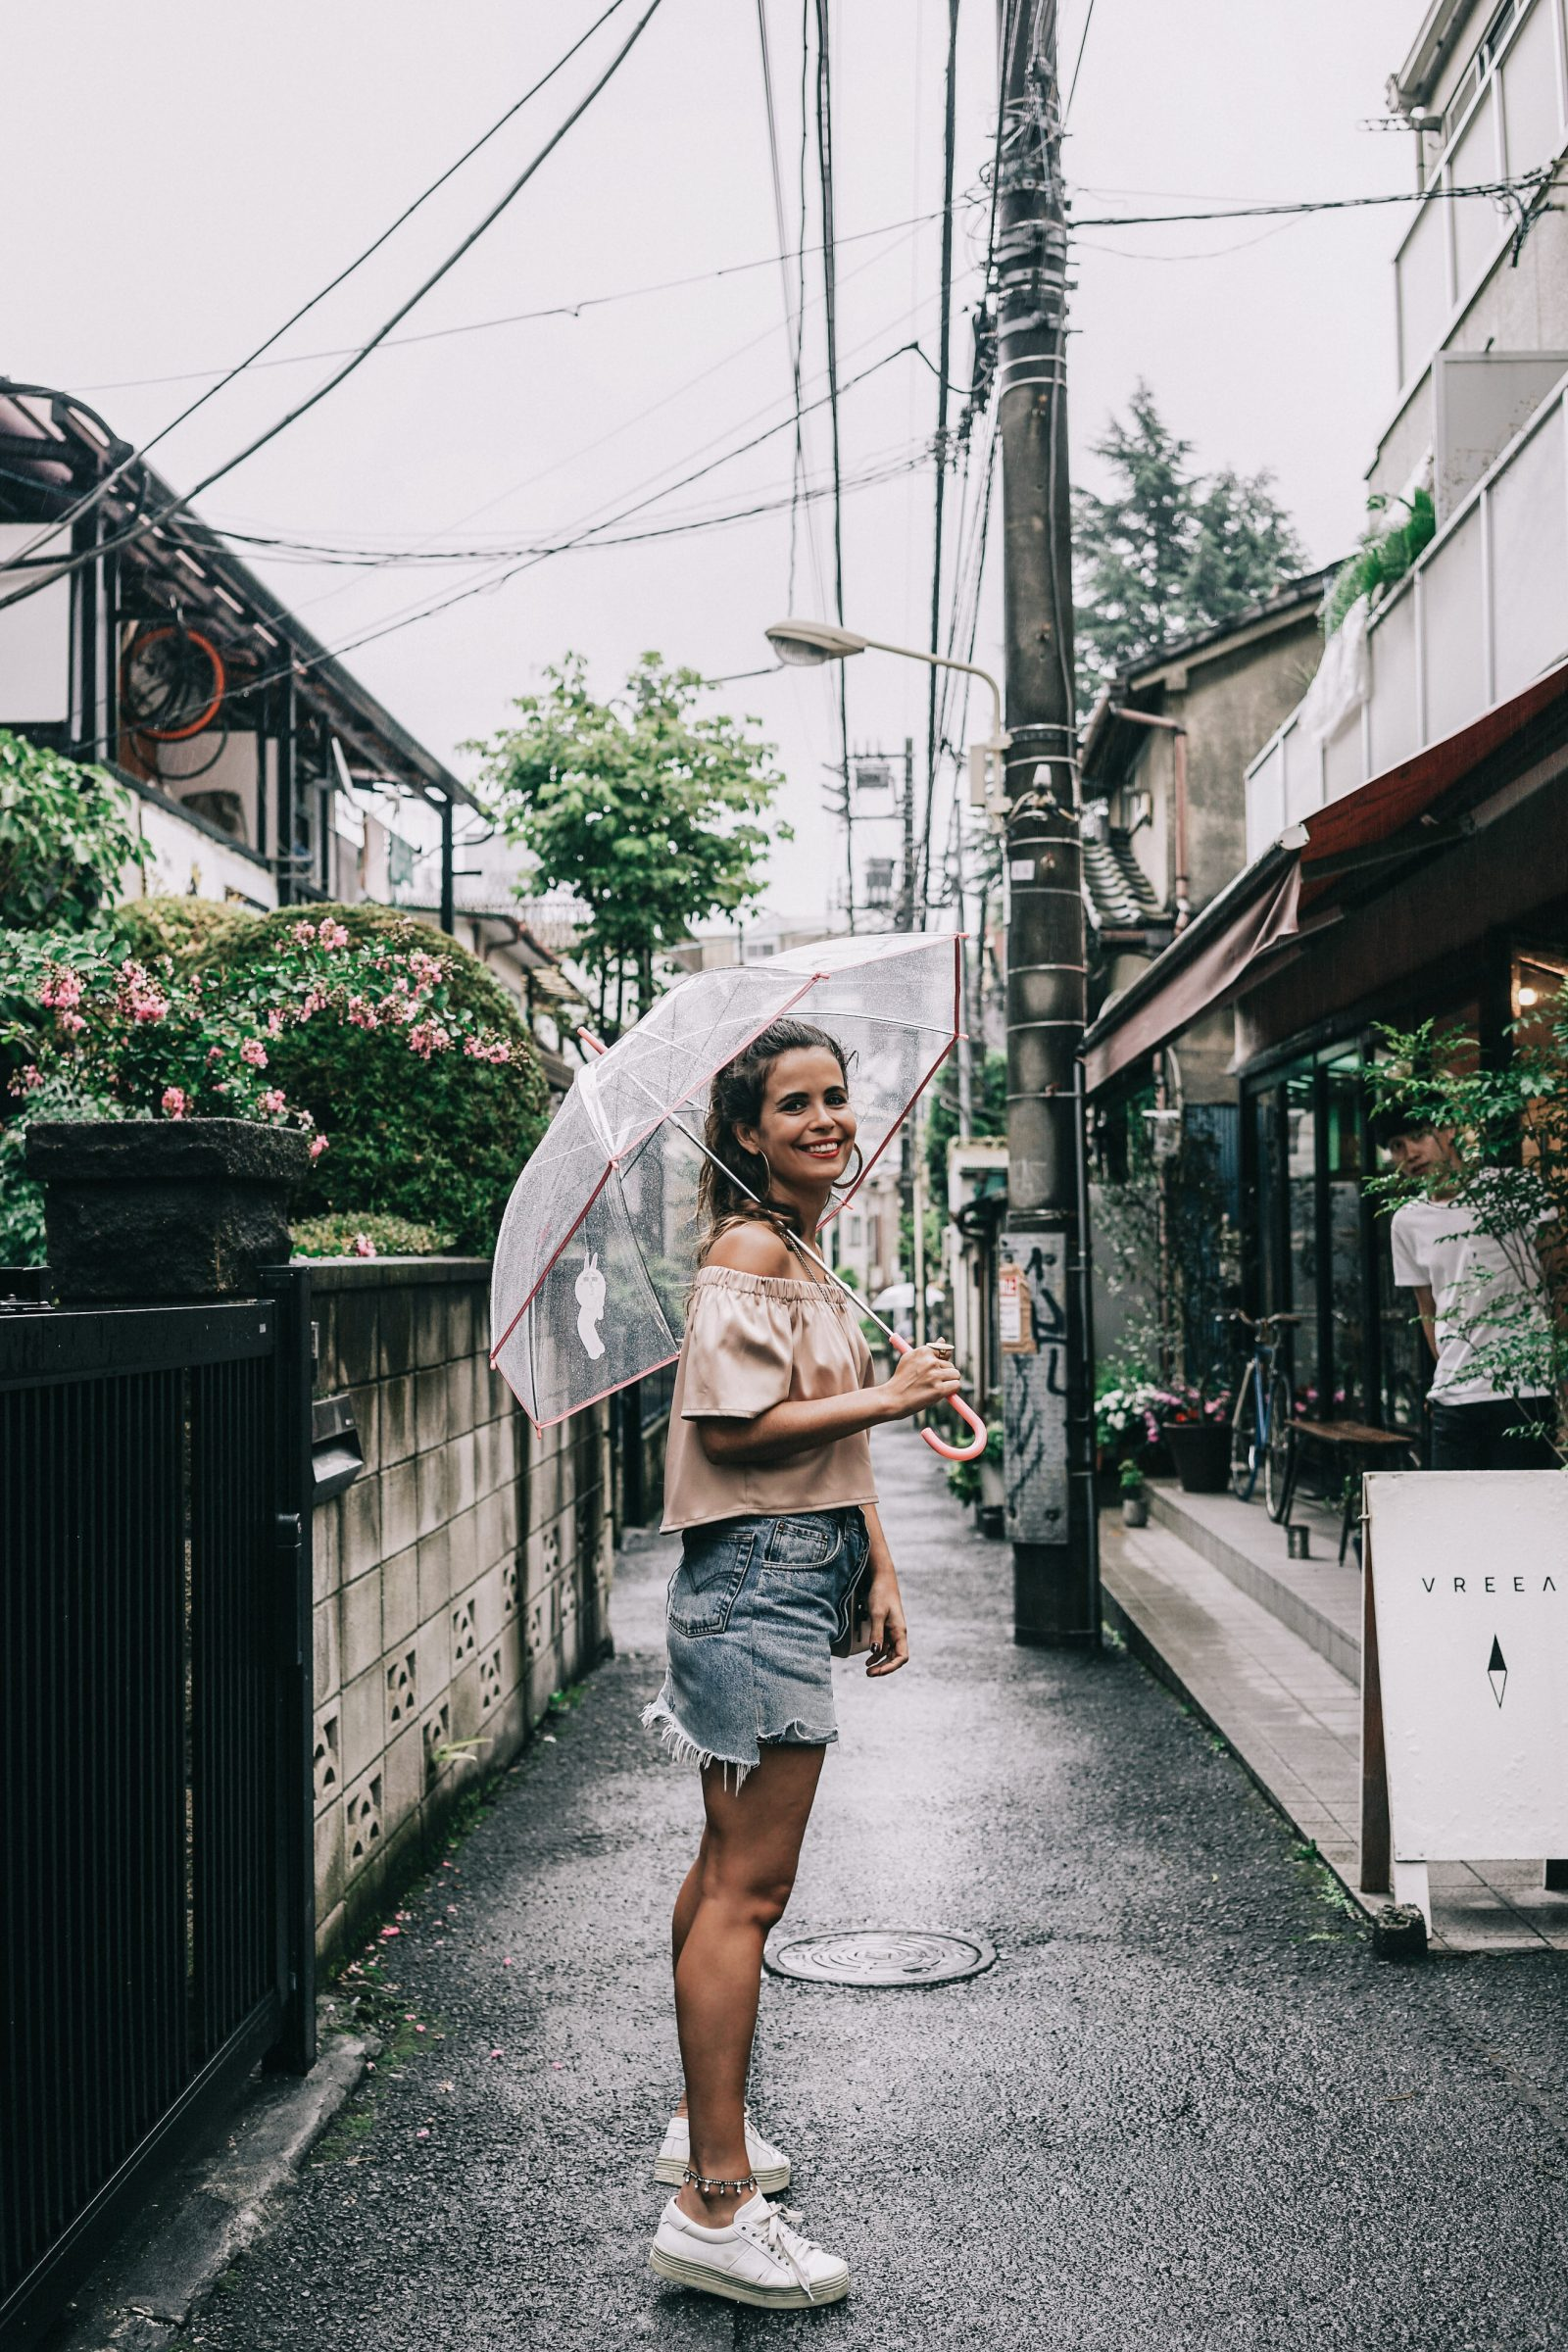 Tokyo_Travel_Guide-Fish_Market-Harajuku-Levis_Denim_Skirt-Off_The_Shoulders_Top-YSL_Sneakers-Outfit-Collage_Vintage-Street_Style-141